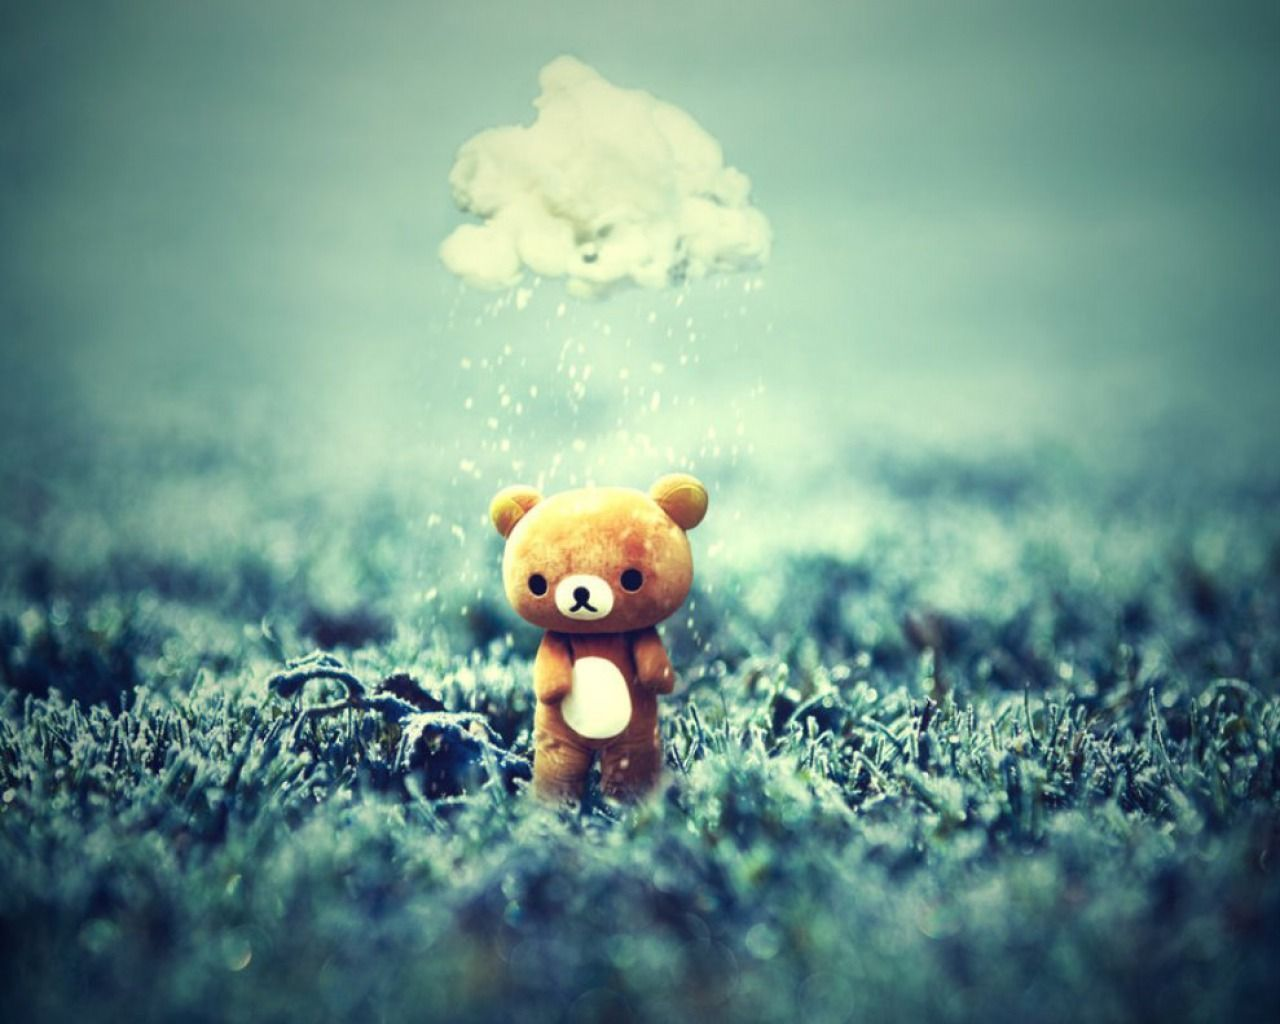 cute teddy bear pictures download free hd images hd wallpapers | hd